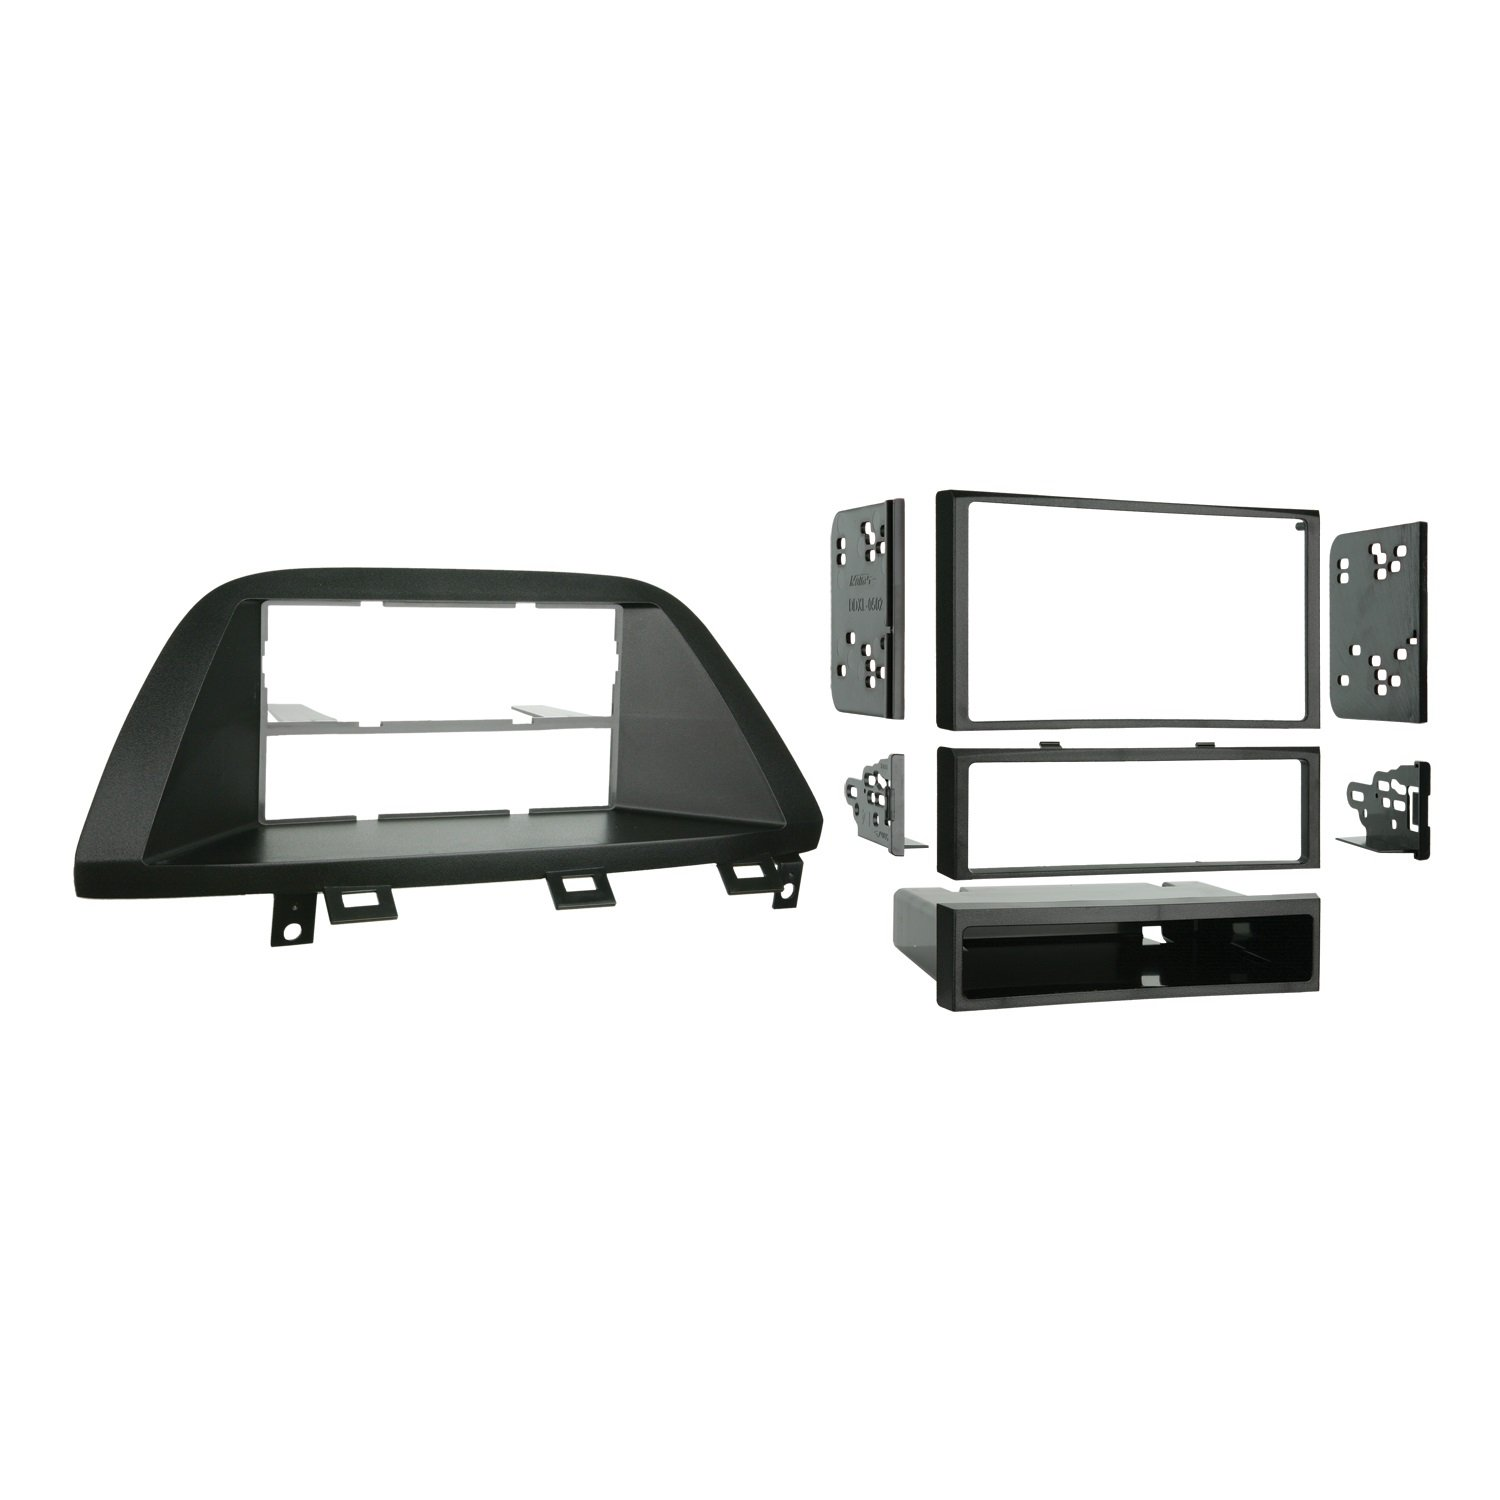 Metra Single or Double DIN Installation Kit for 2005-2007 Honda Odyssey Vehicles